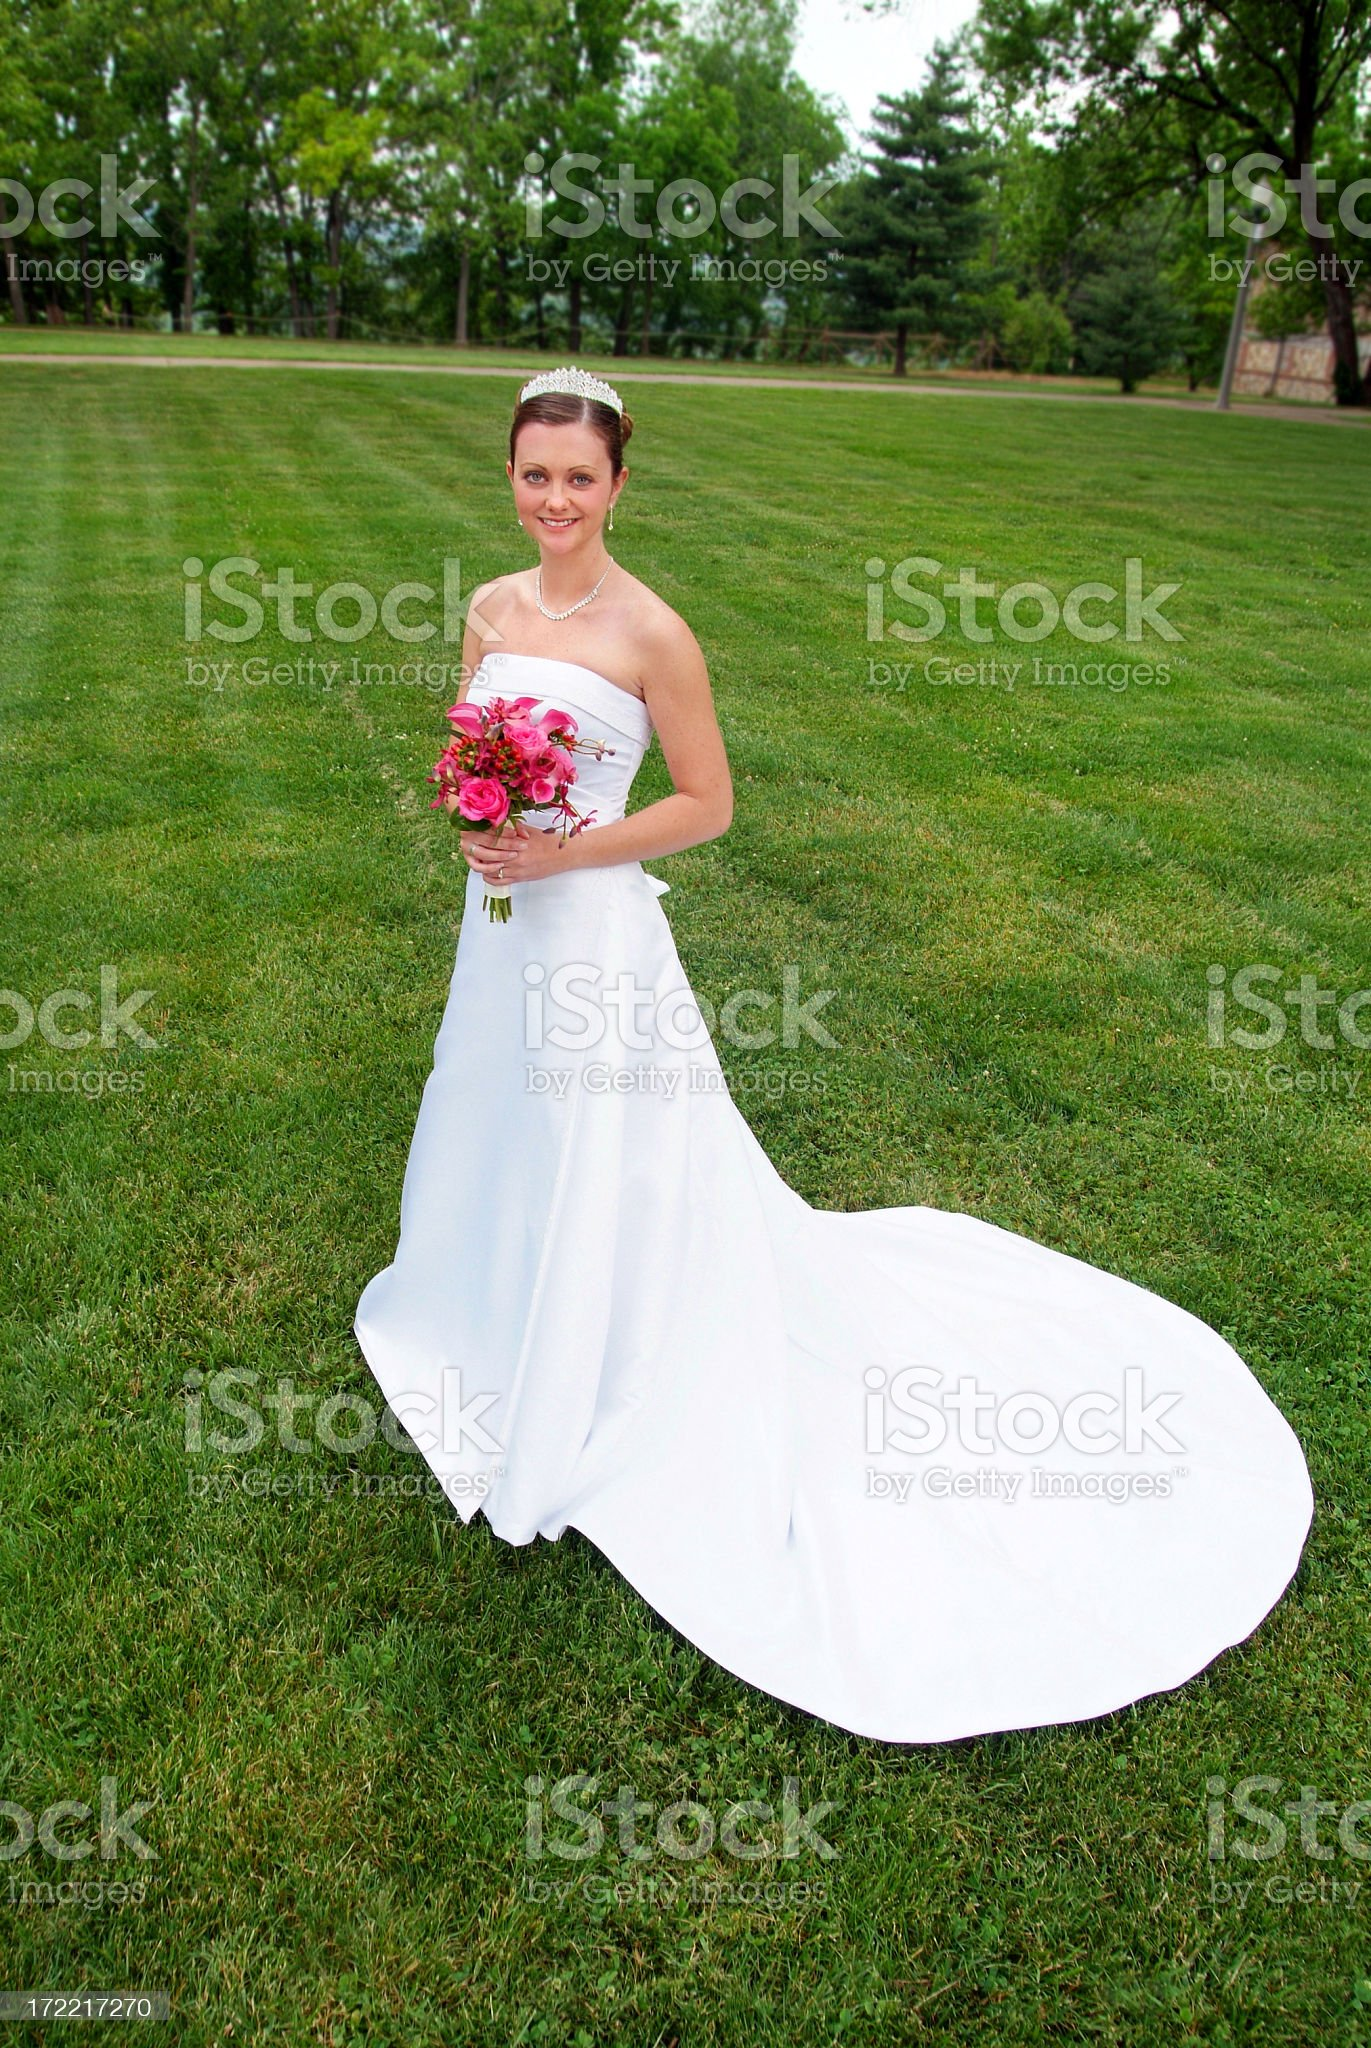 Beautiful Bride in her Gown Standing on a Green Lawn royalty-free stock photo